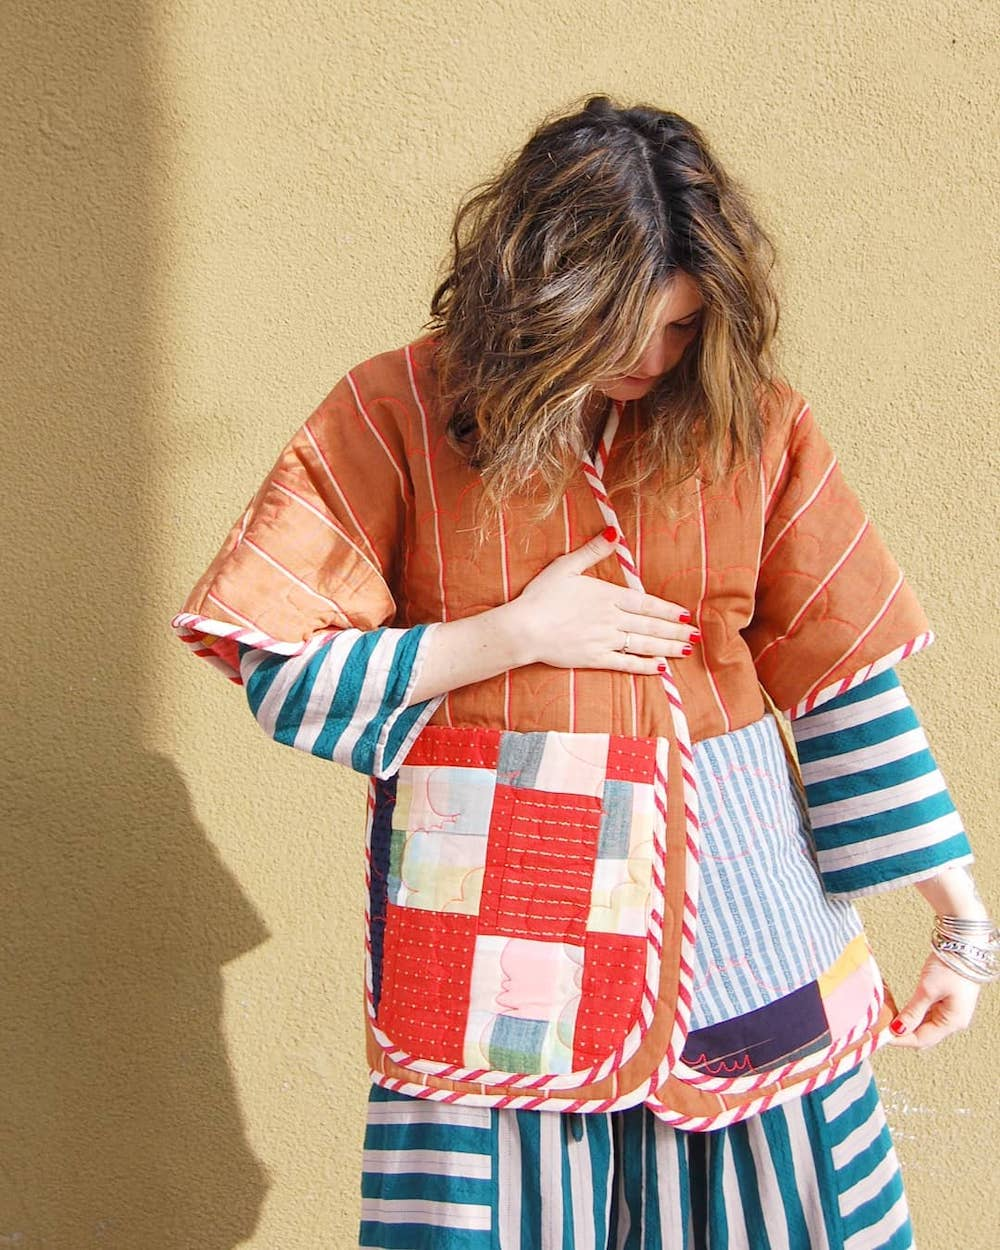 These Contemporary Quilt Jackets are a Stylish Way to Cozy Beyond Your Bed